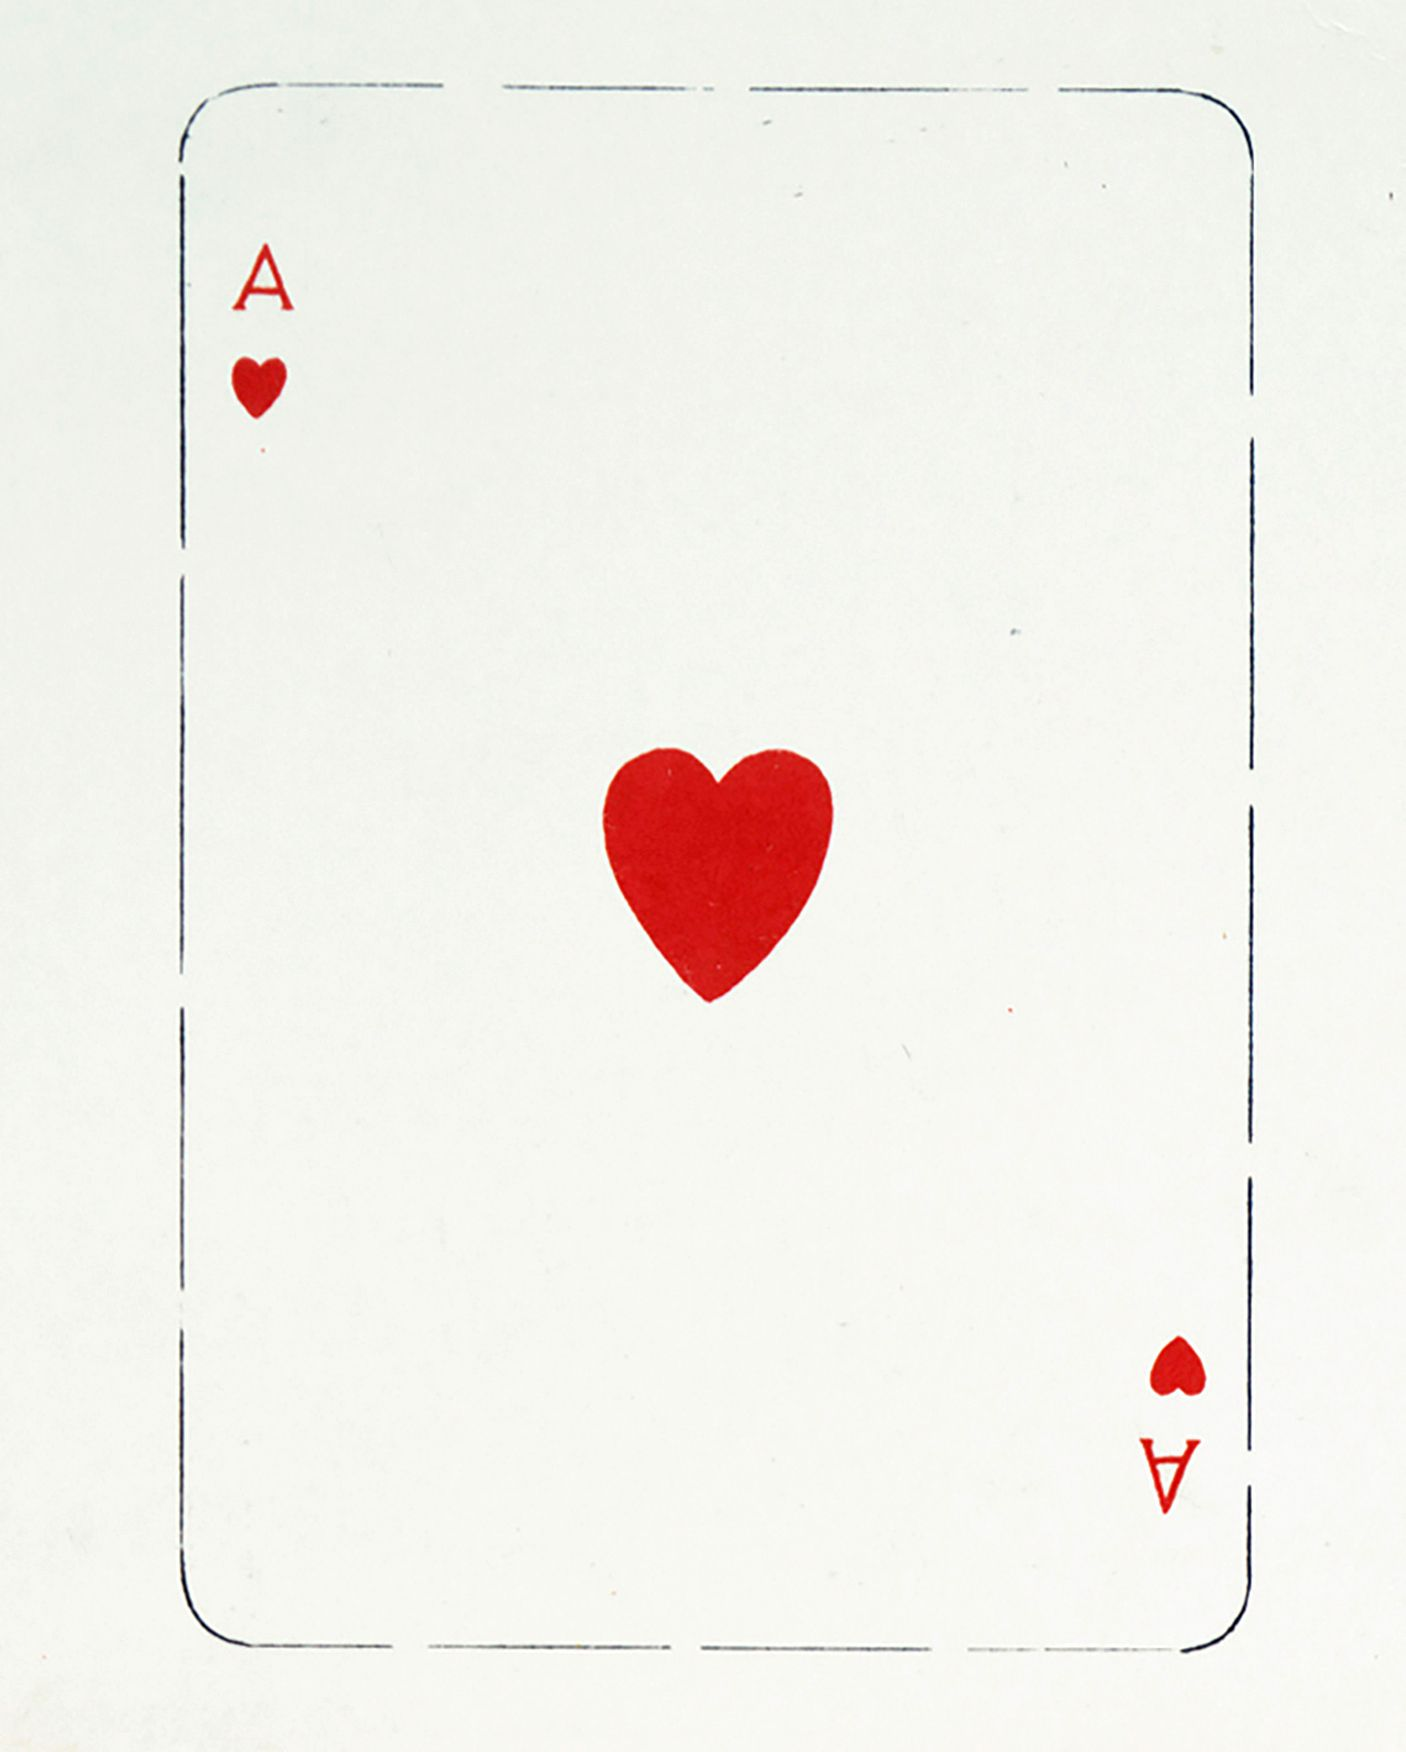 Vintage Ace of Hearts Image   Heart images, Graphics fairy and Graphics